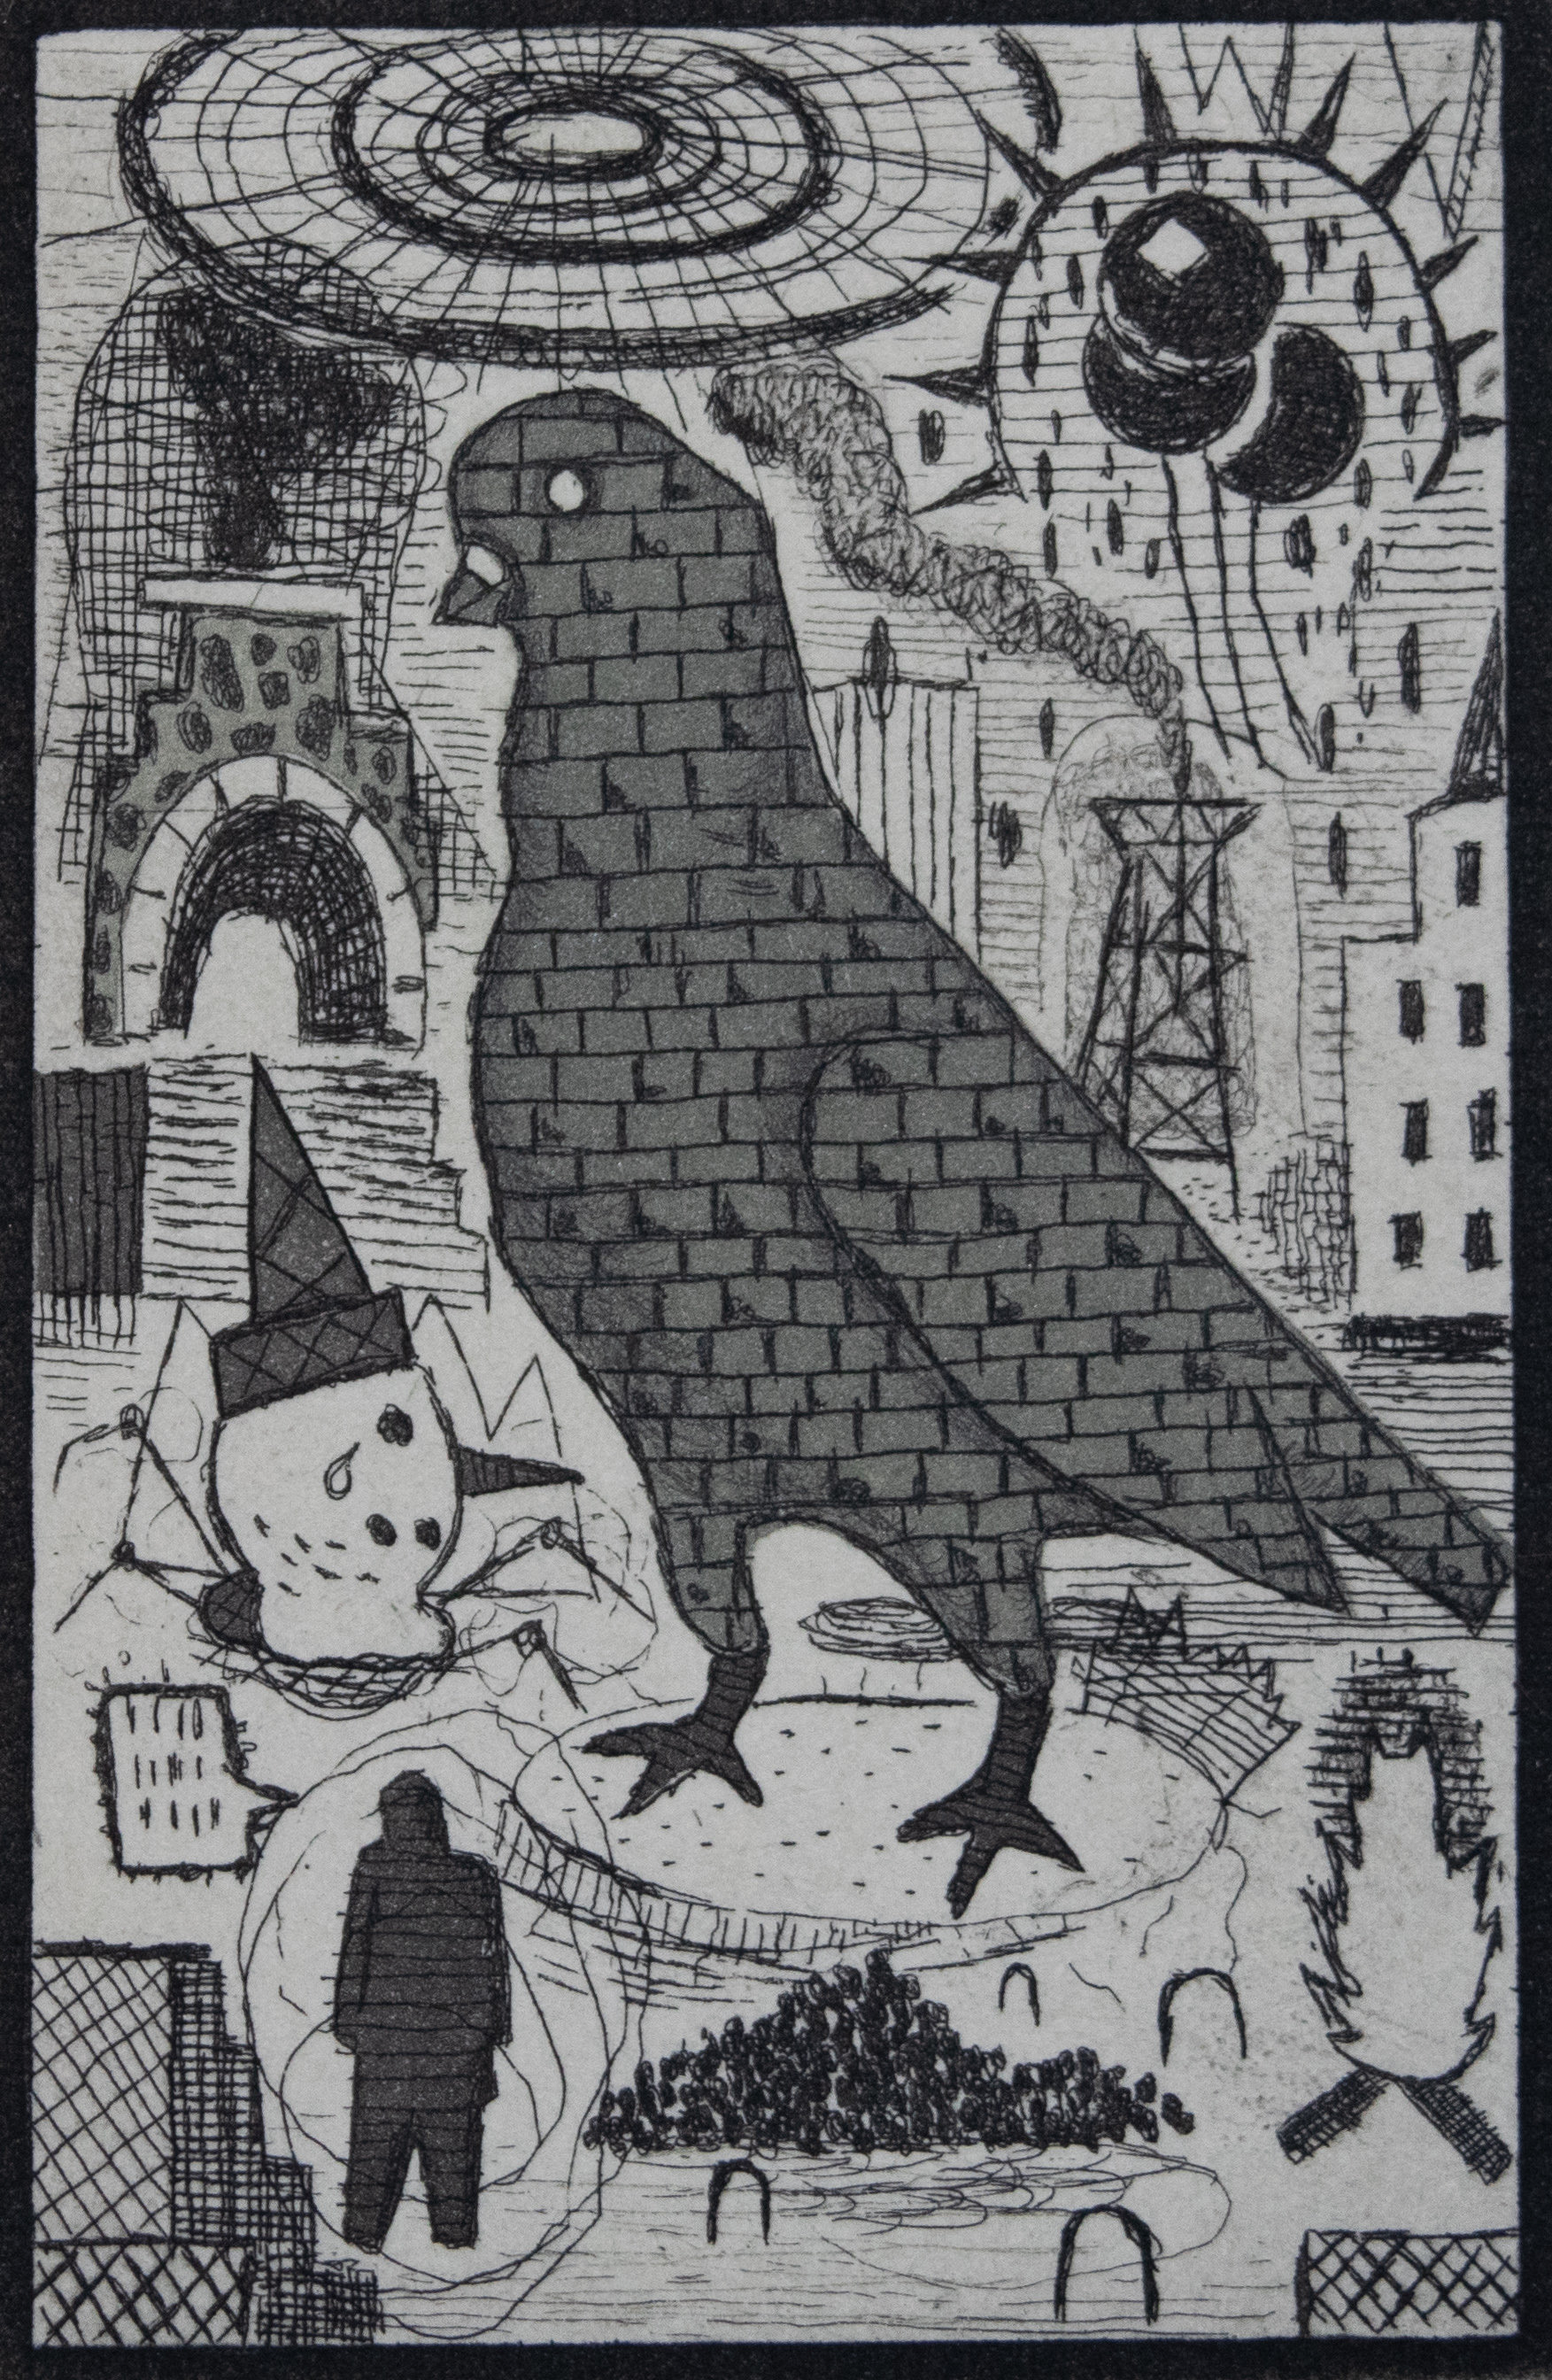 """Tony Fitzpatrick - """"Stone Bird""""  Medium: Etching  Size: 2 x 3 inches (matted 8 x 9 inches)"""